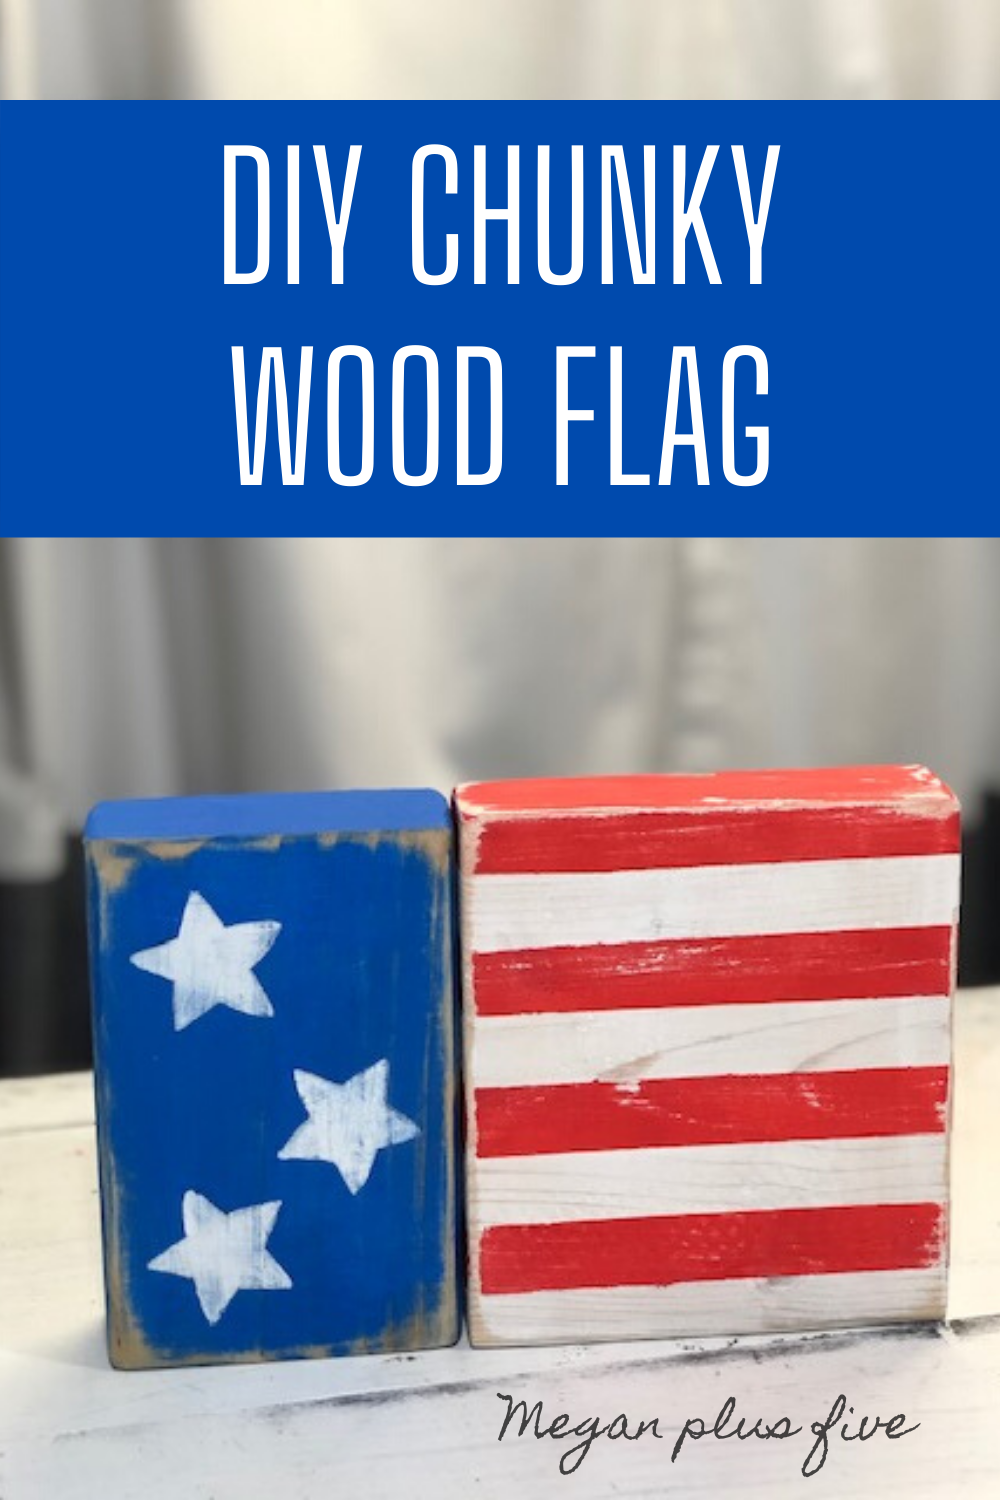 DIY CHUNKY WOOD FLAG, make your own wood flag from scrap 2x4 lumber. How to make a wood flag using 2x4 and 2x6. Easy American flag tutorial.